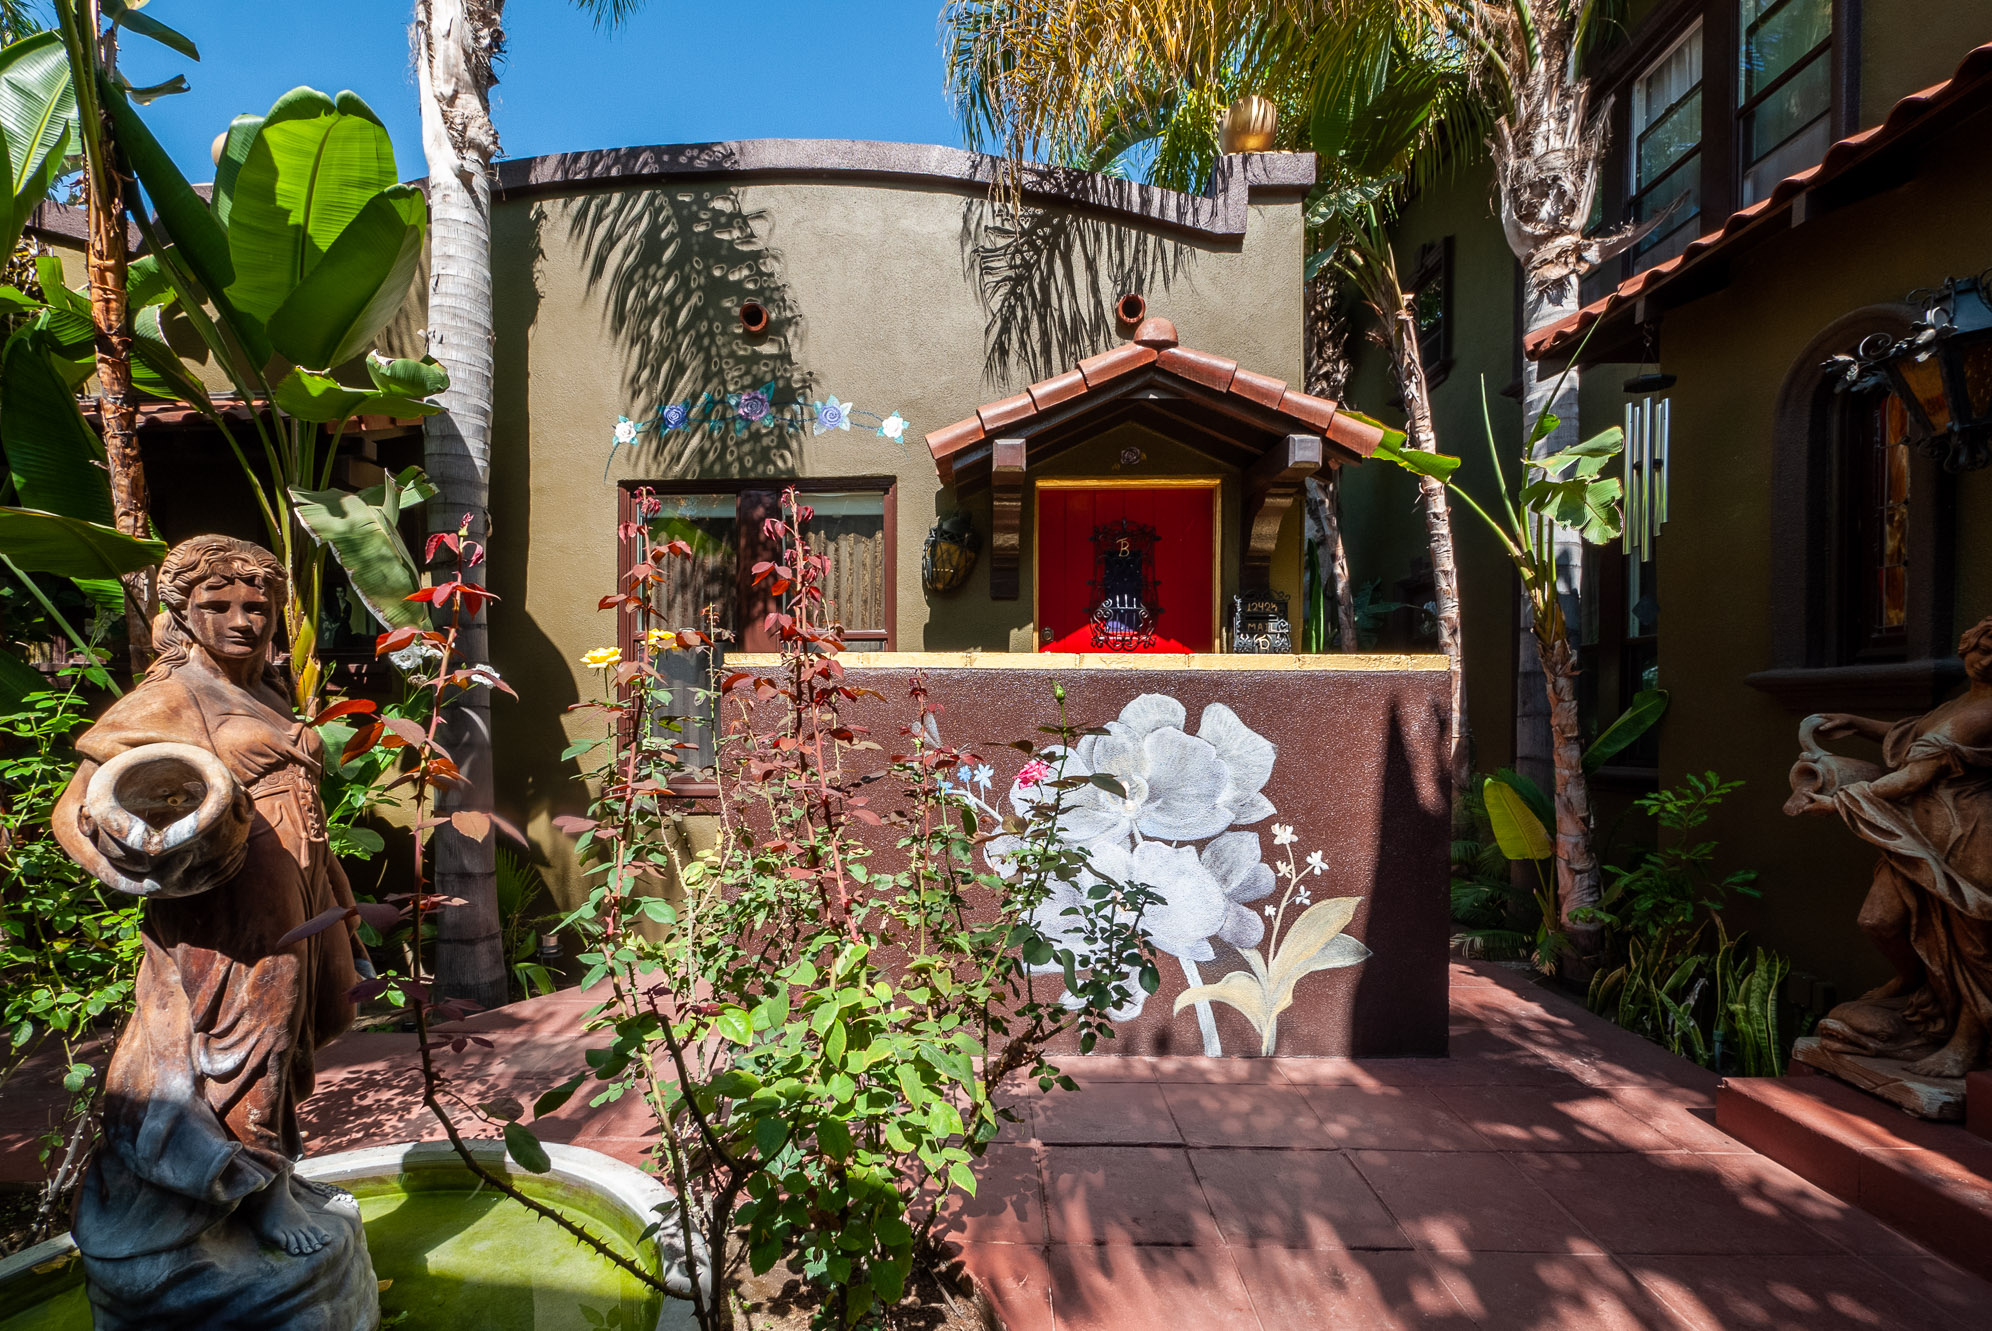 Serene 1 BR Bungalow Nestled in the Heart of Hollywood! Hardwood floors. Communal Outdoor Grill and Parking Included...